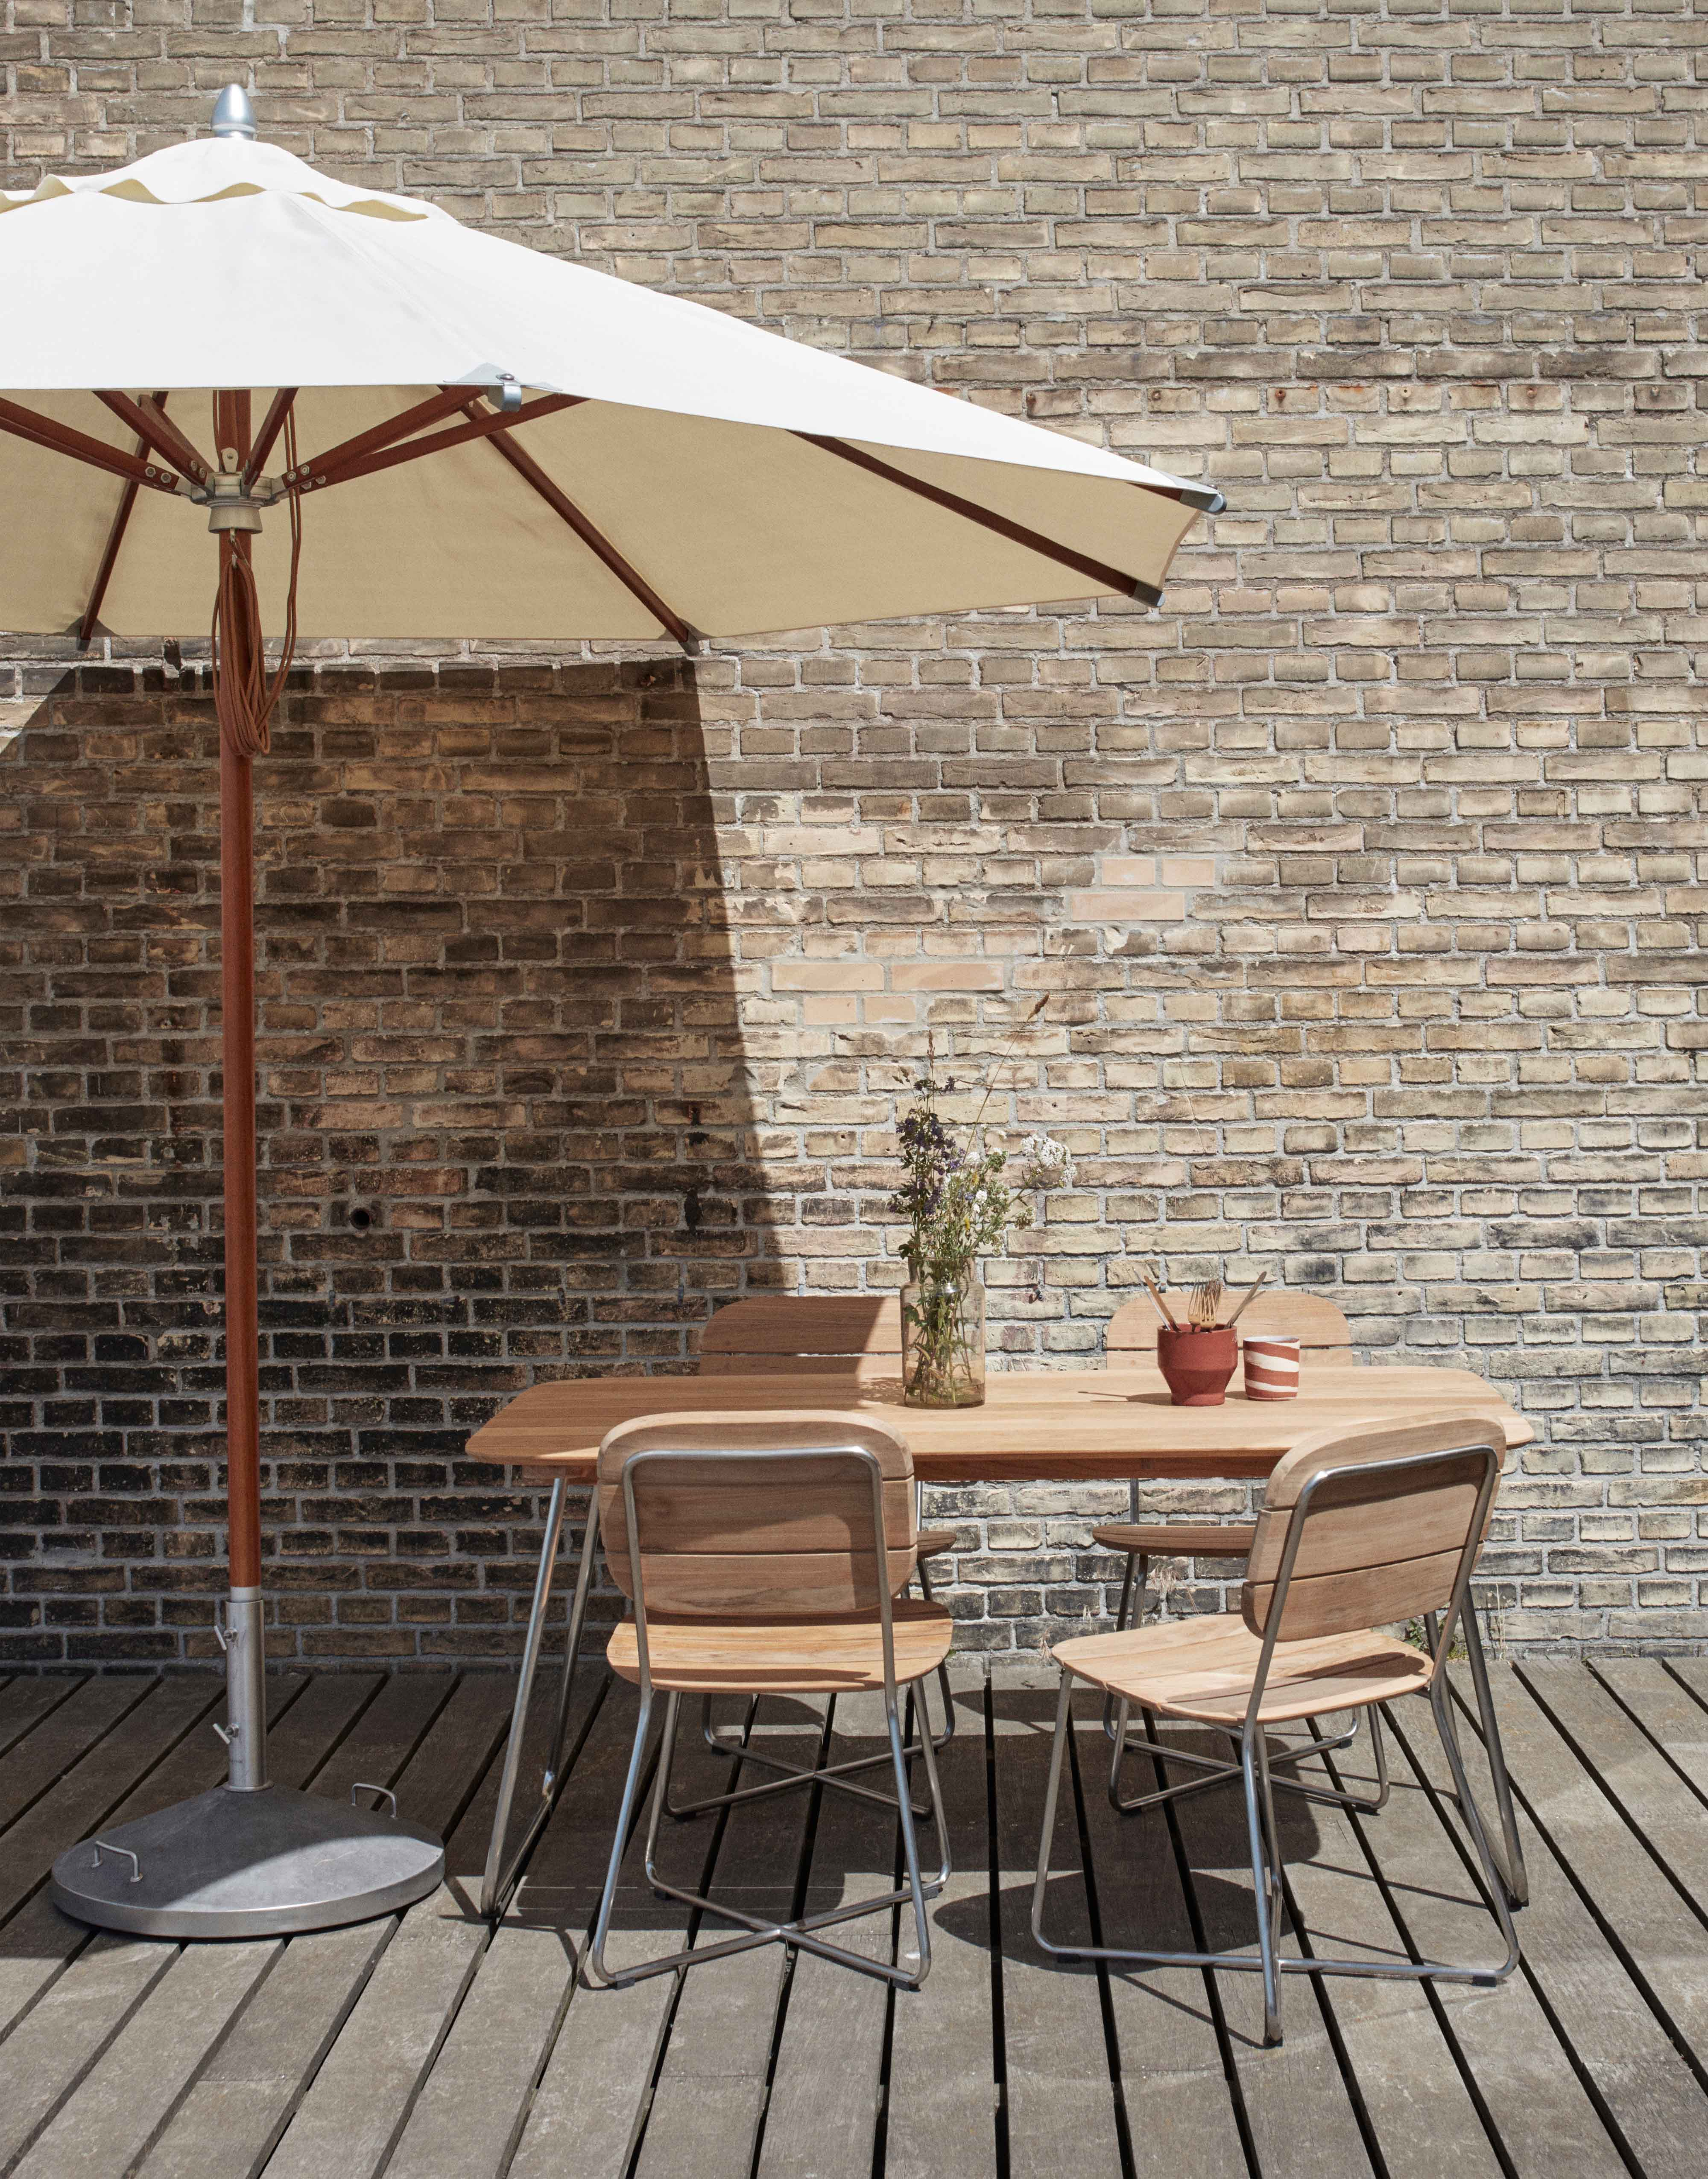 10 of the best outdoor dining sets7